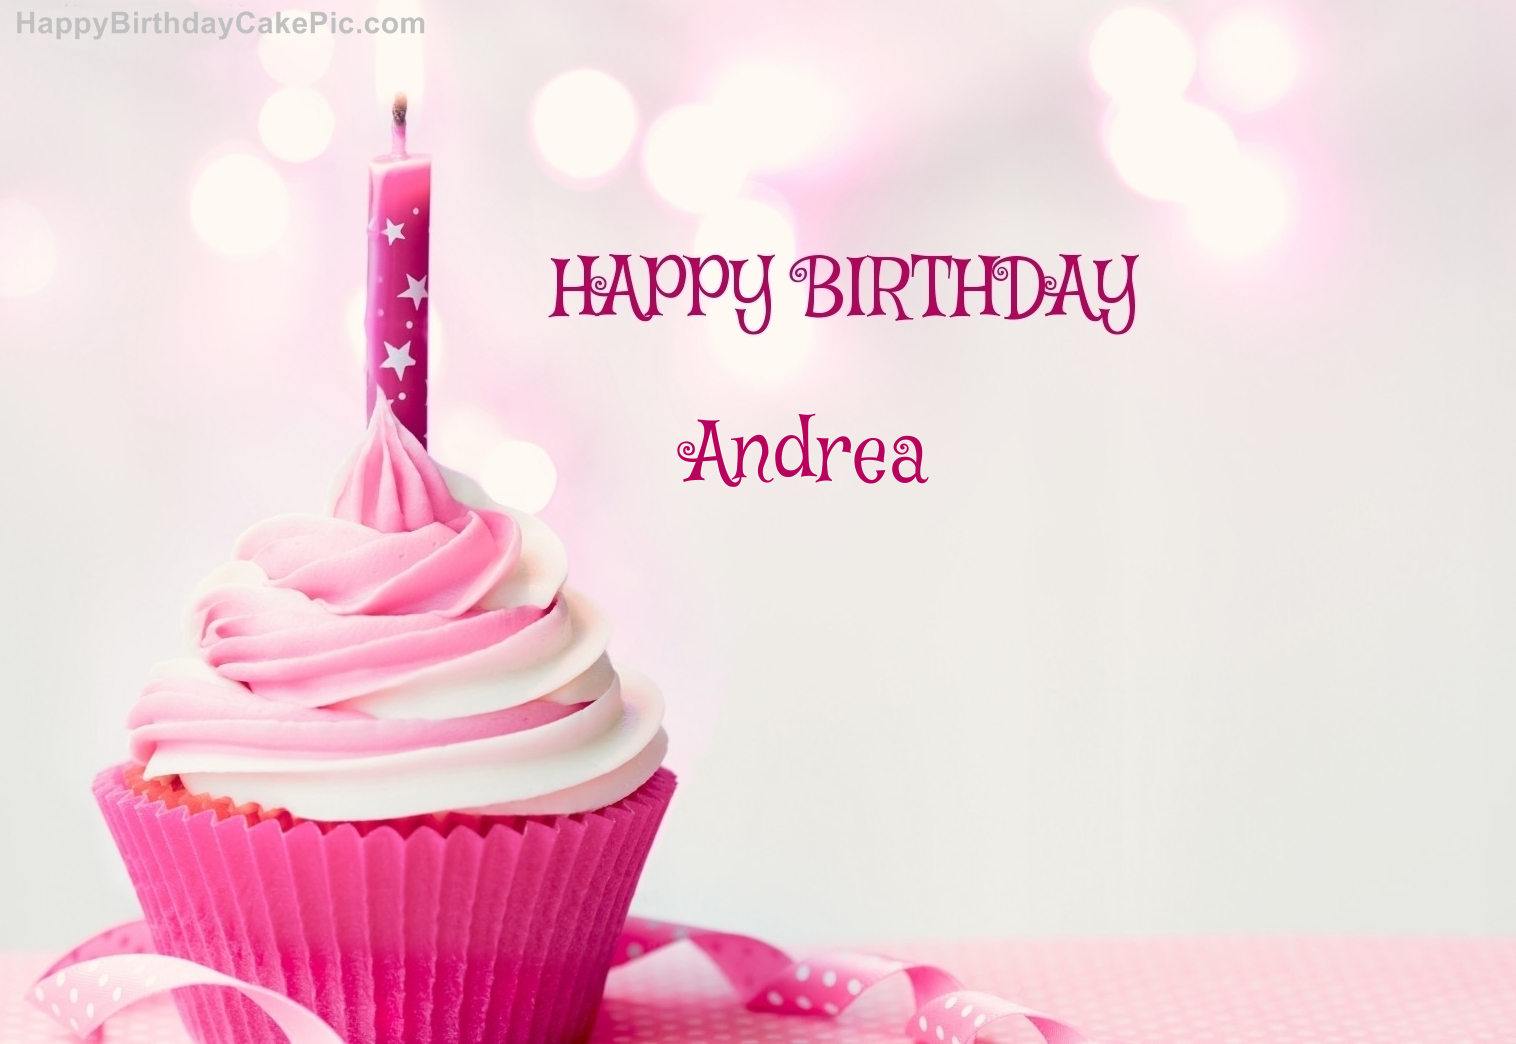 Happy Birthday Cupcake Candle Pink Cake For Andrea